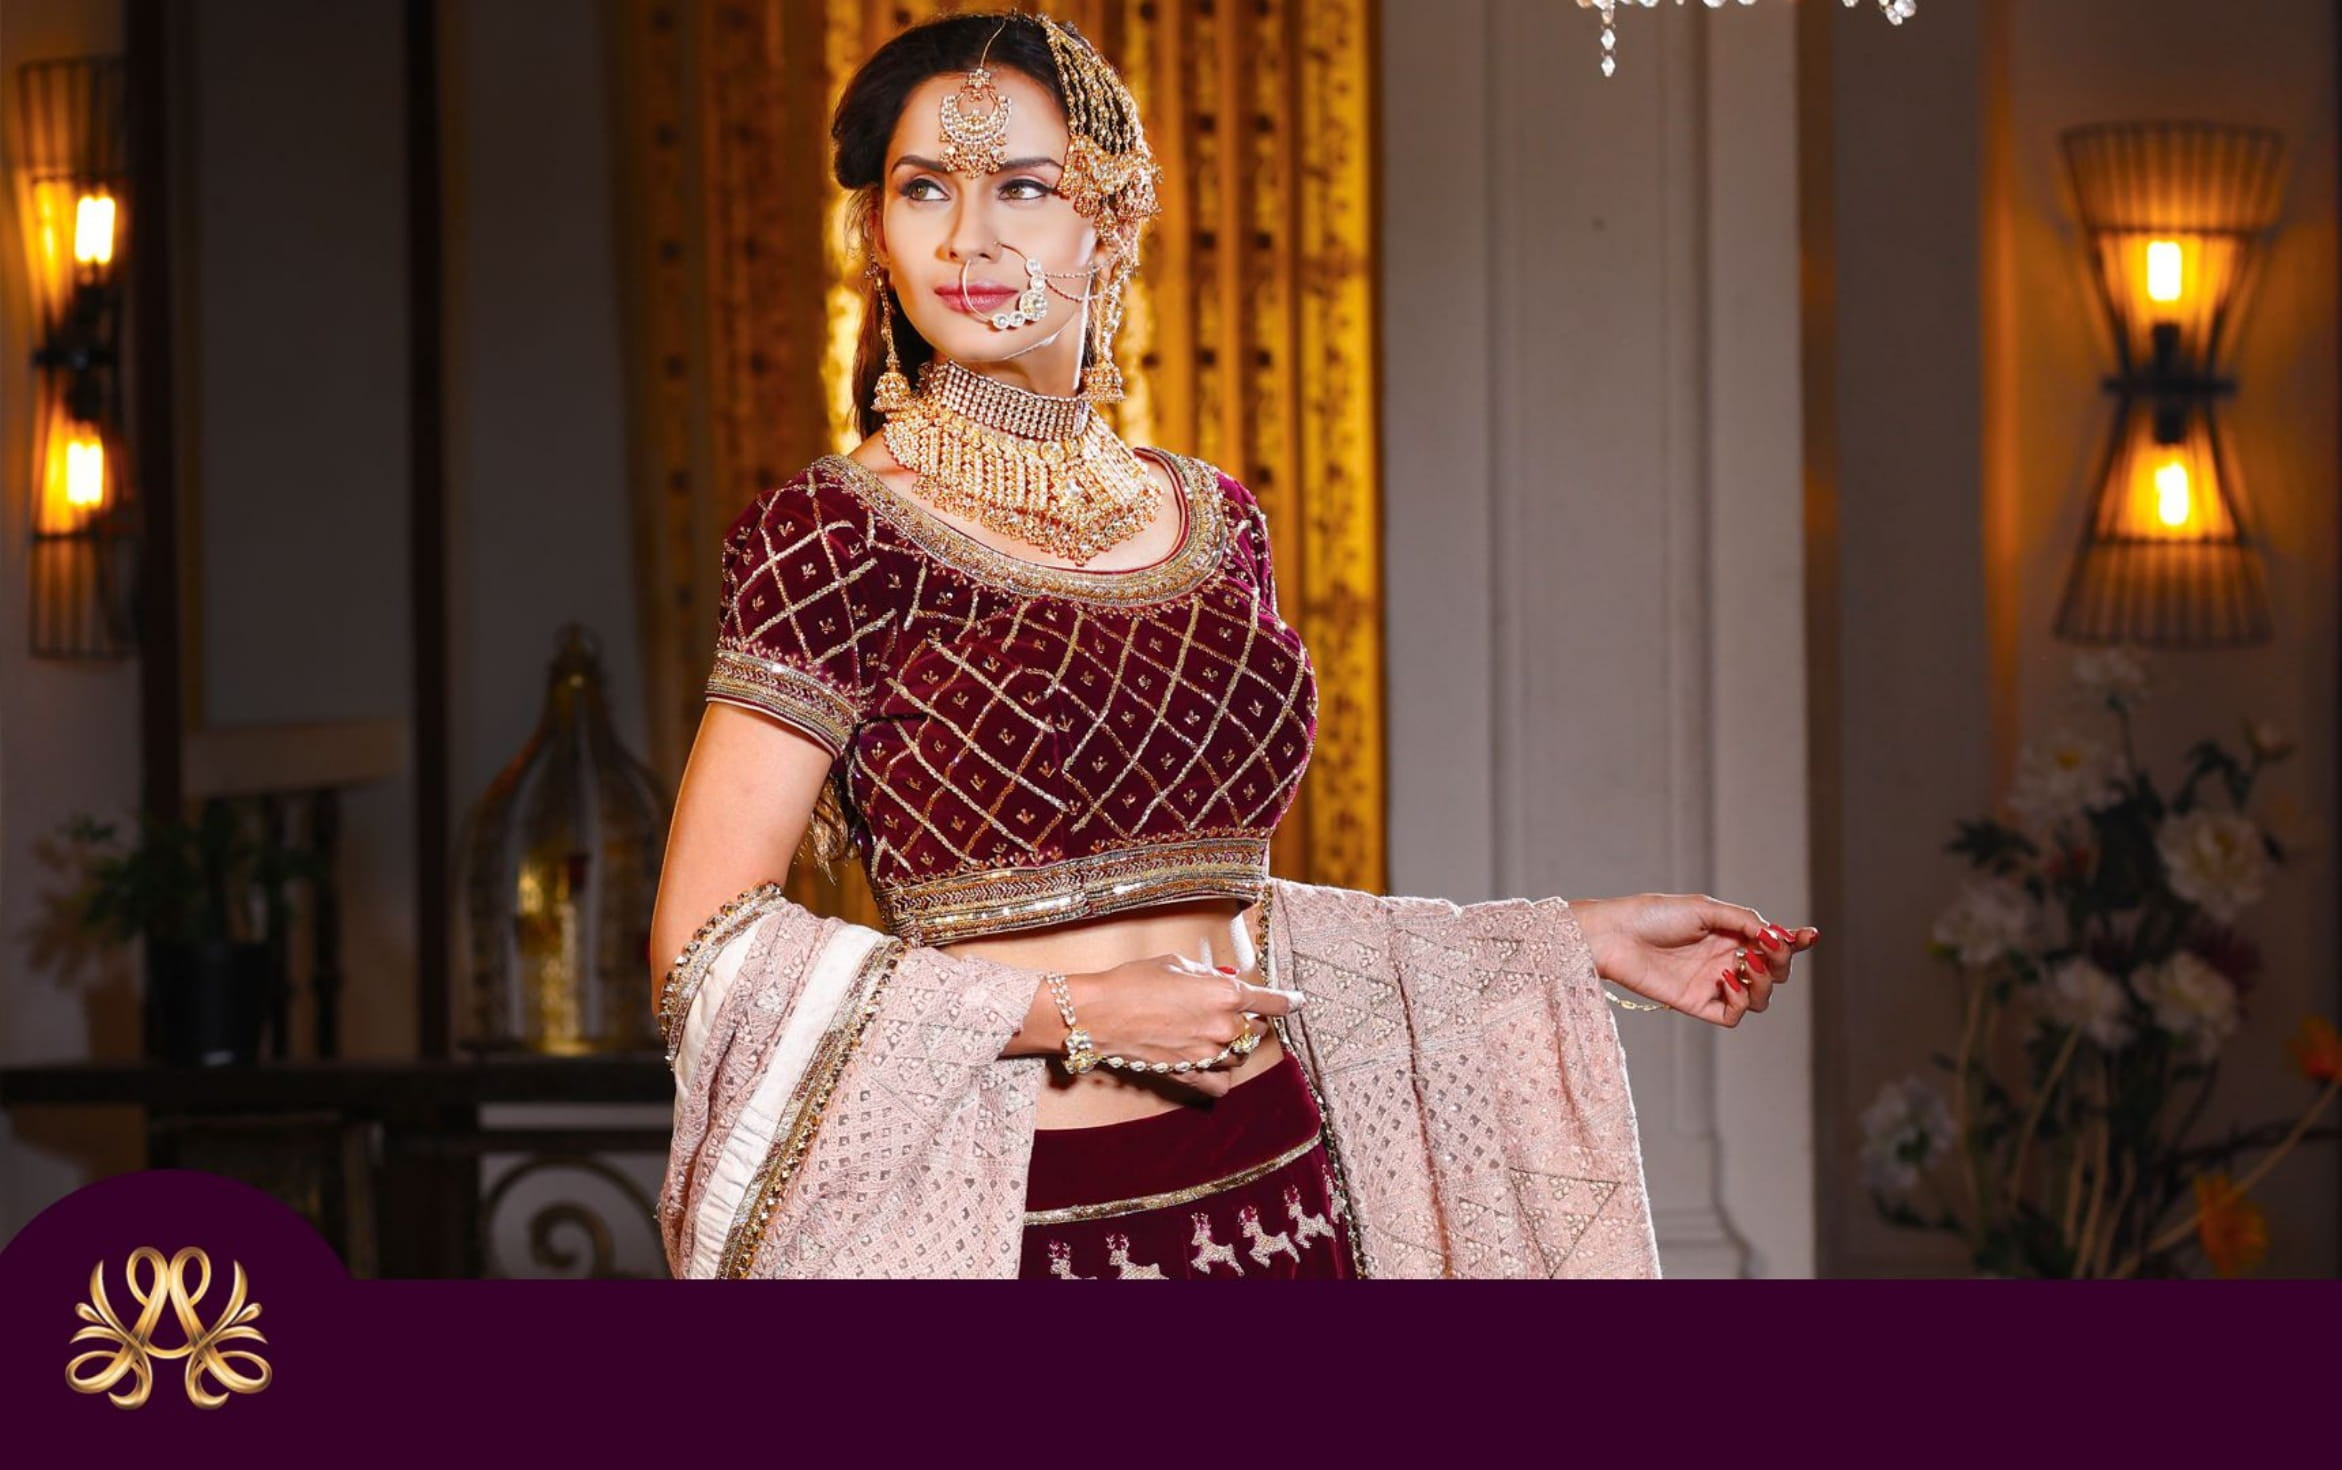 look book page 10 model wearing bridal lehenga and bridal jewellery